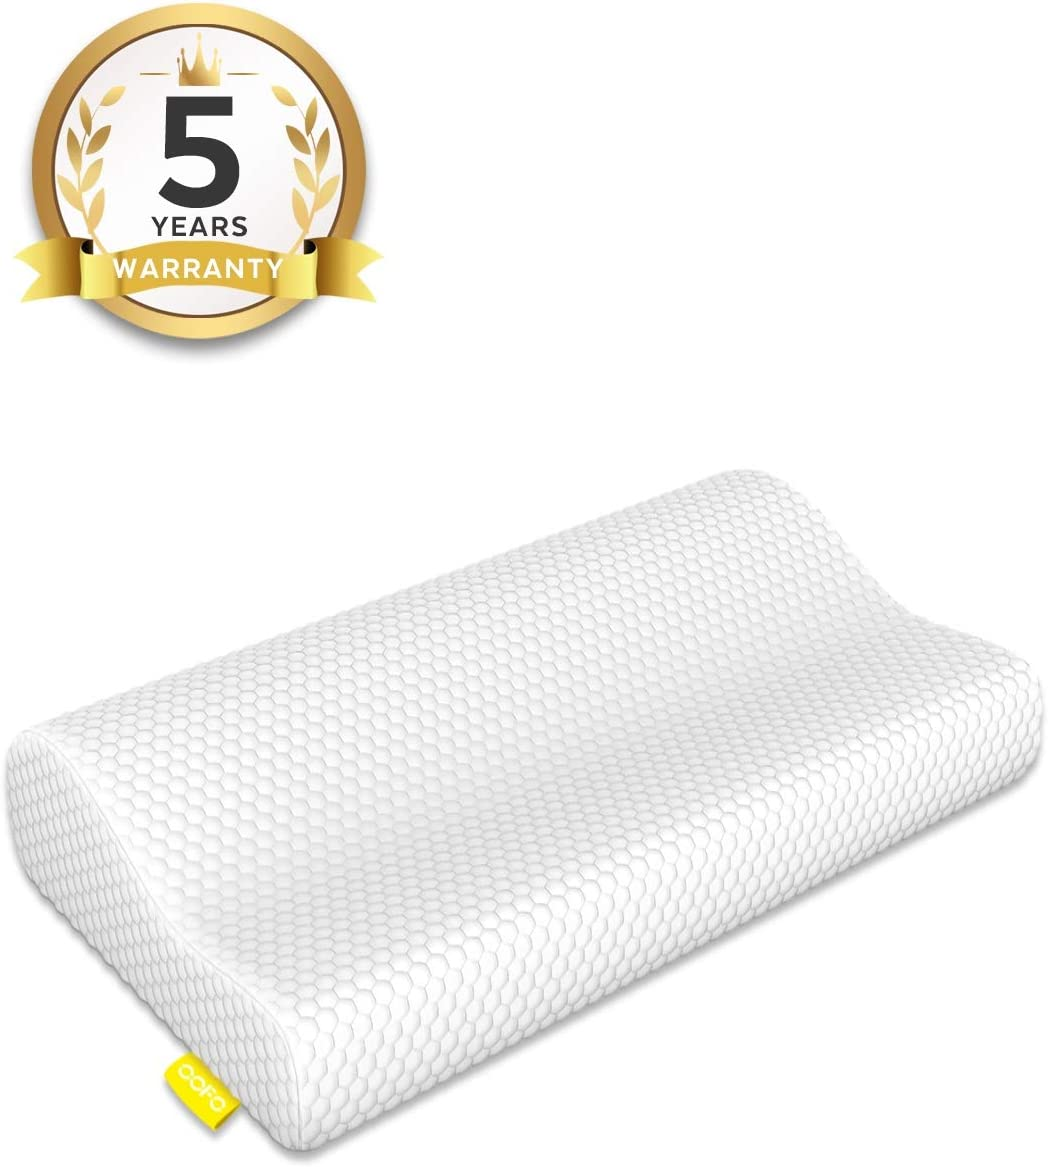 OOFO Memory Foam Pillow Adjustable Cervical Bed Pillow Cover for Neck and Shoulder Pain Contour Pillow Neck Support for Back, Stomach, Side Sleepers